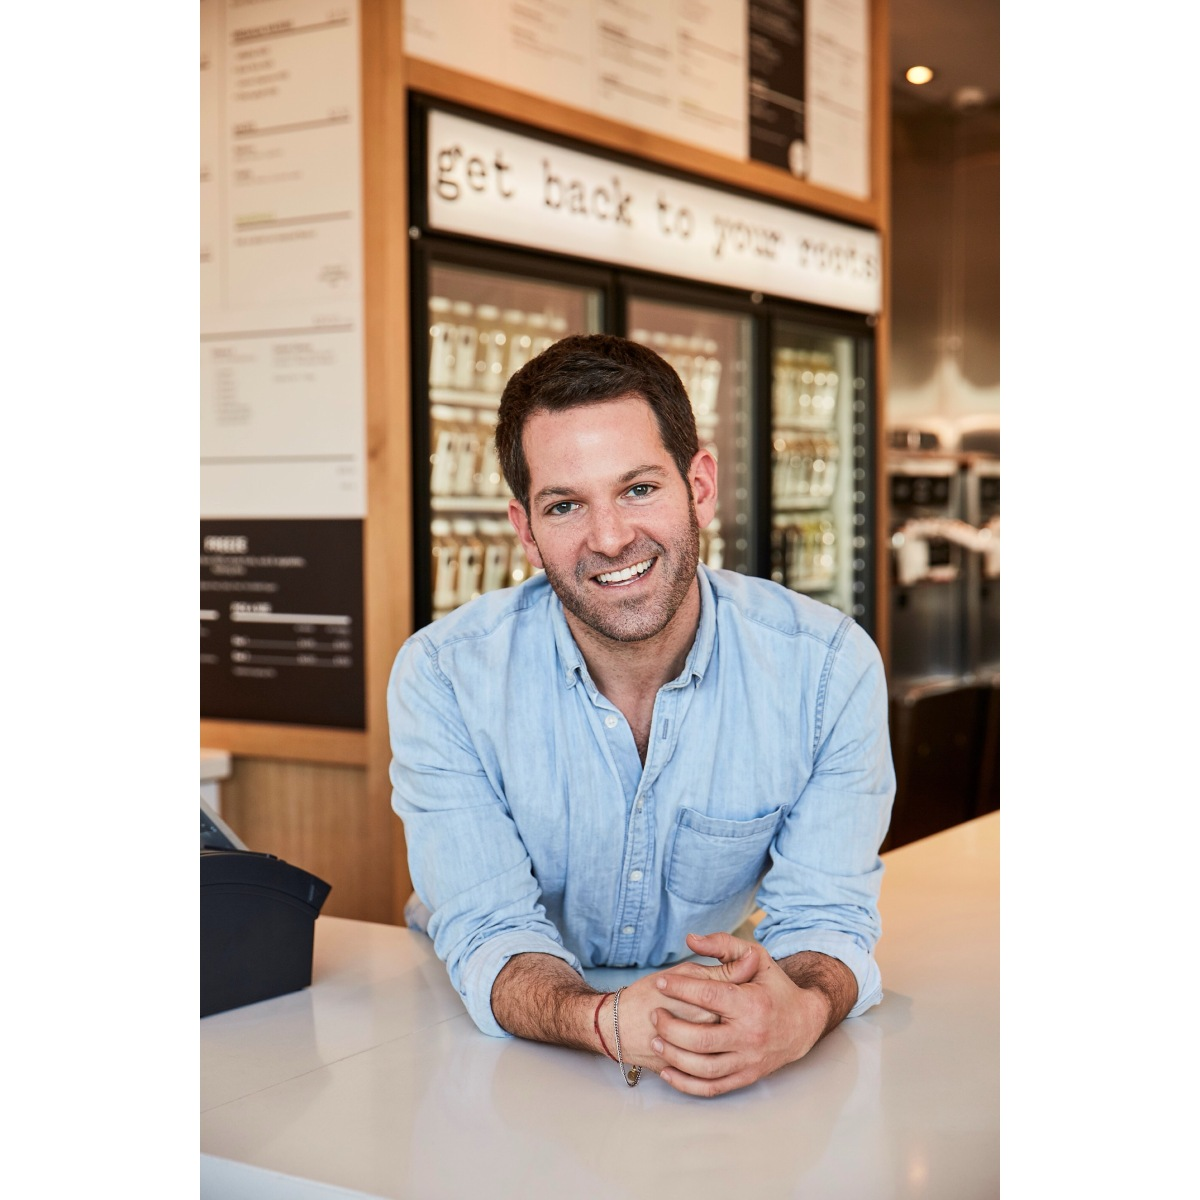 Meet the Co-founder & CEO of Pressed Juicery, Hayden Slater